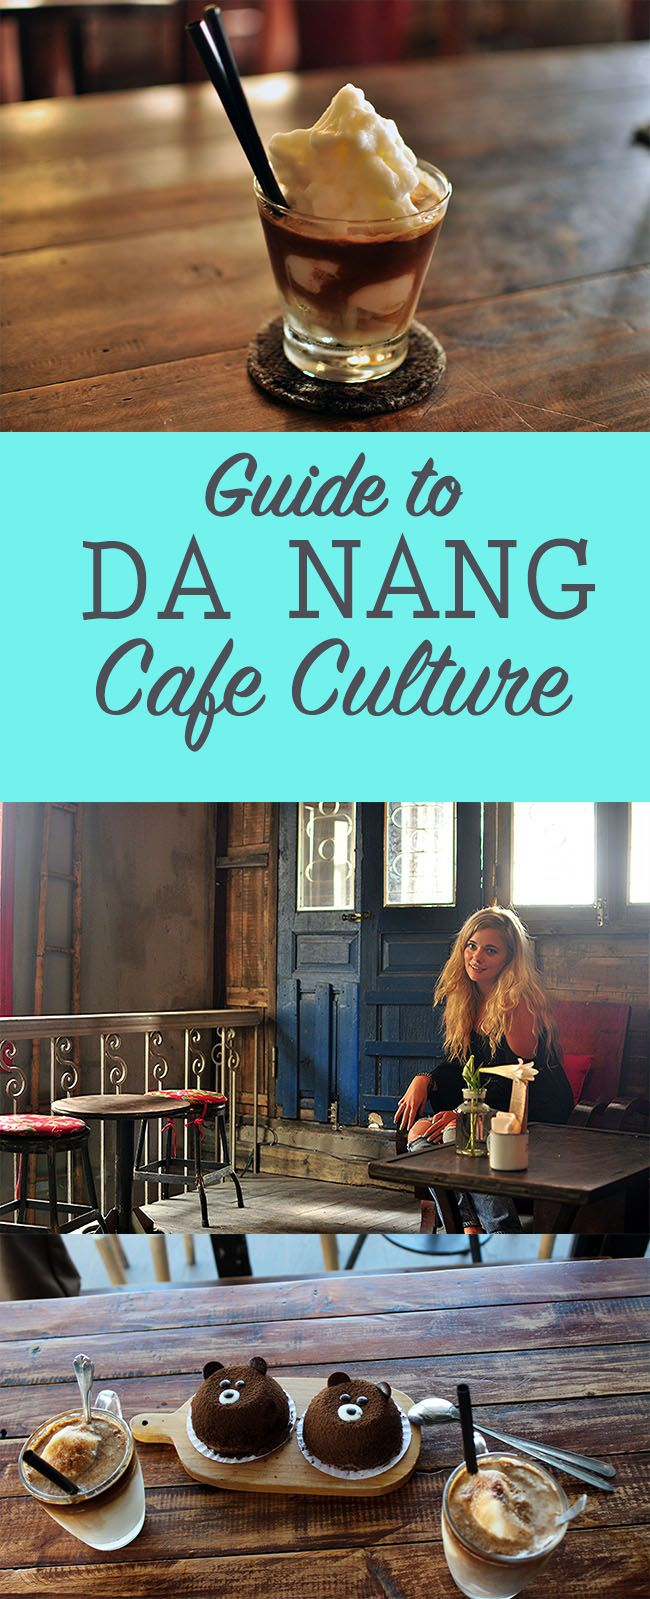 Da Nang is Vietnams best kept secret! And home to some amazing cafes